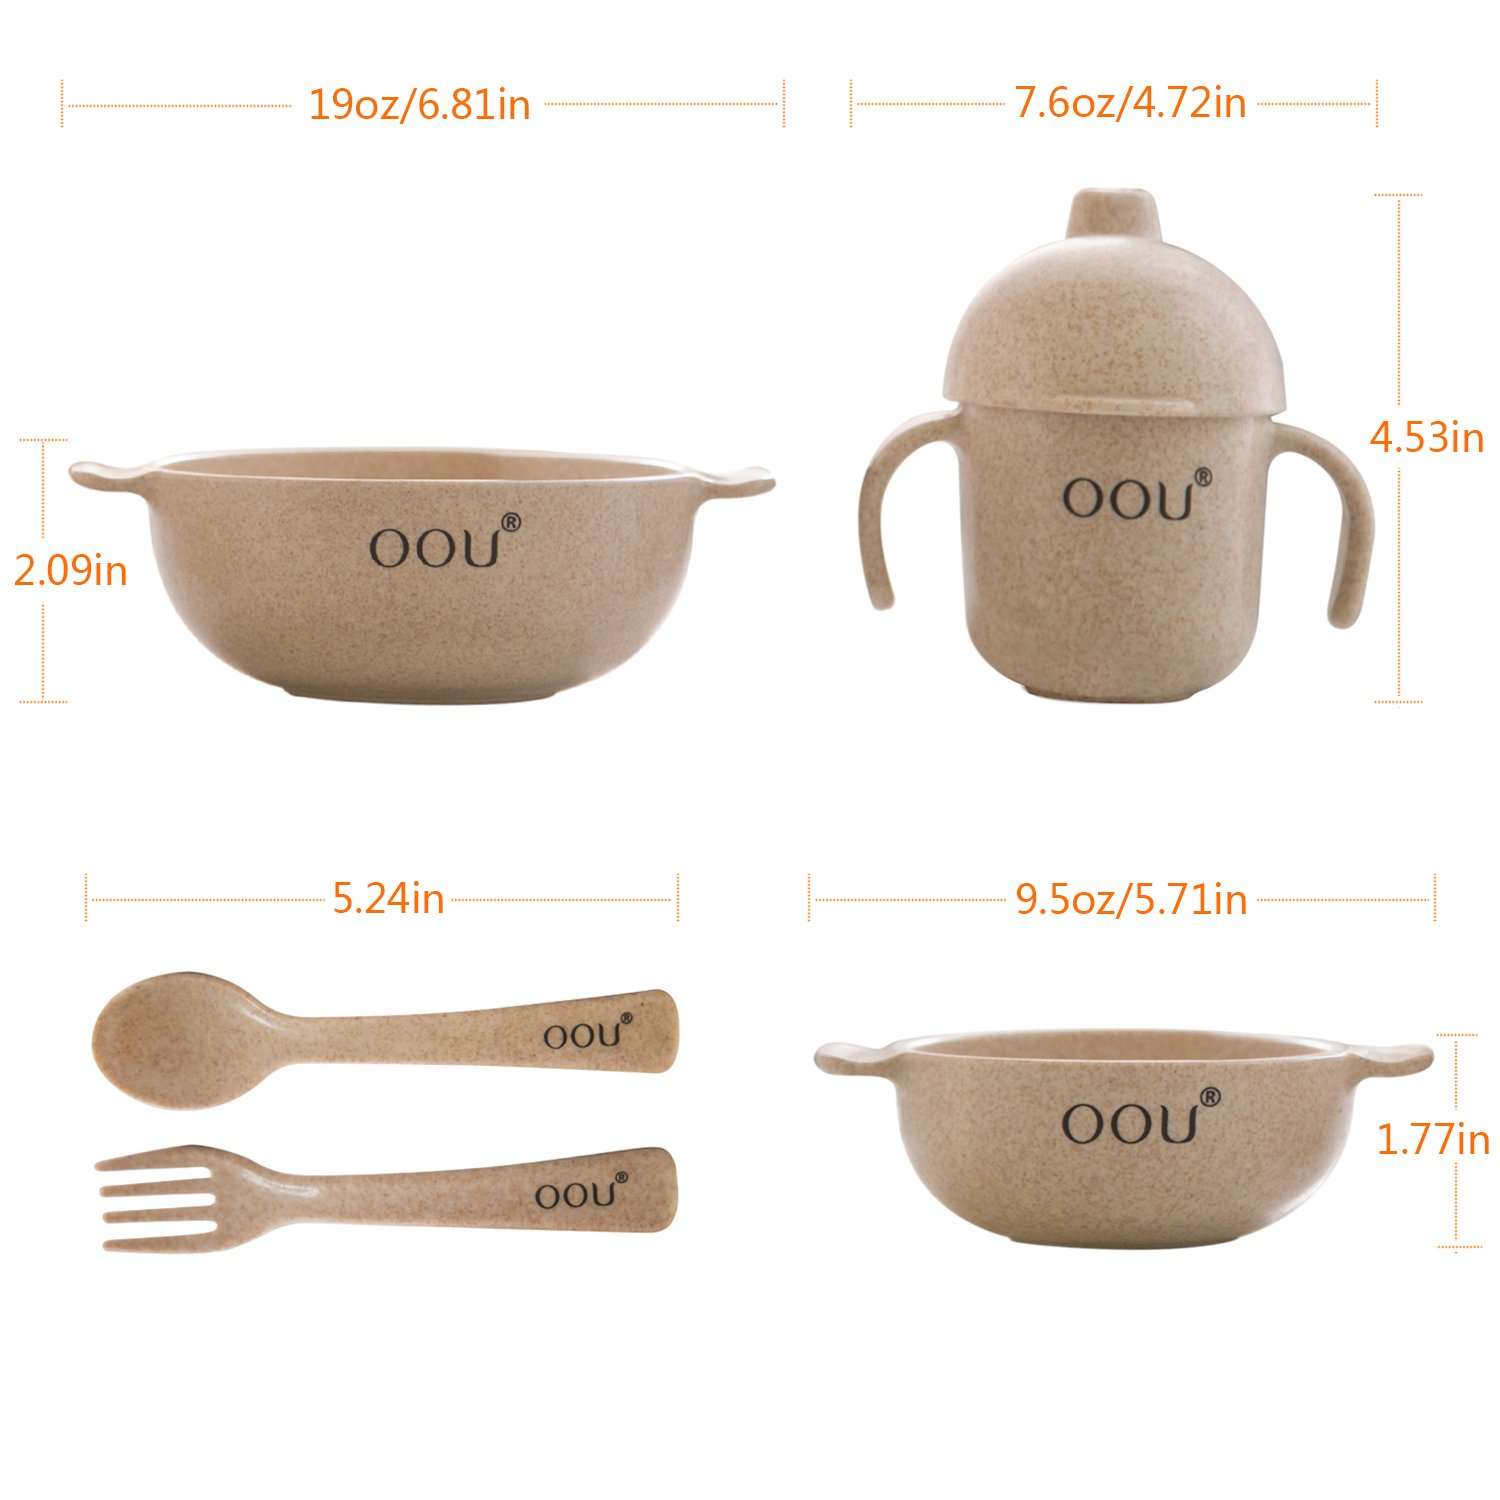 Baby Feeding Bowls - Wheat Fiber Ultimate Baby Feeding Set Baby Bowls Fork Spoon and Cup Perfect To Go Storage FDA Approved BPA Free CPC Certified by OOU (Image #5)